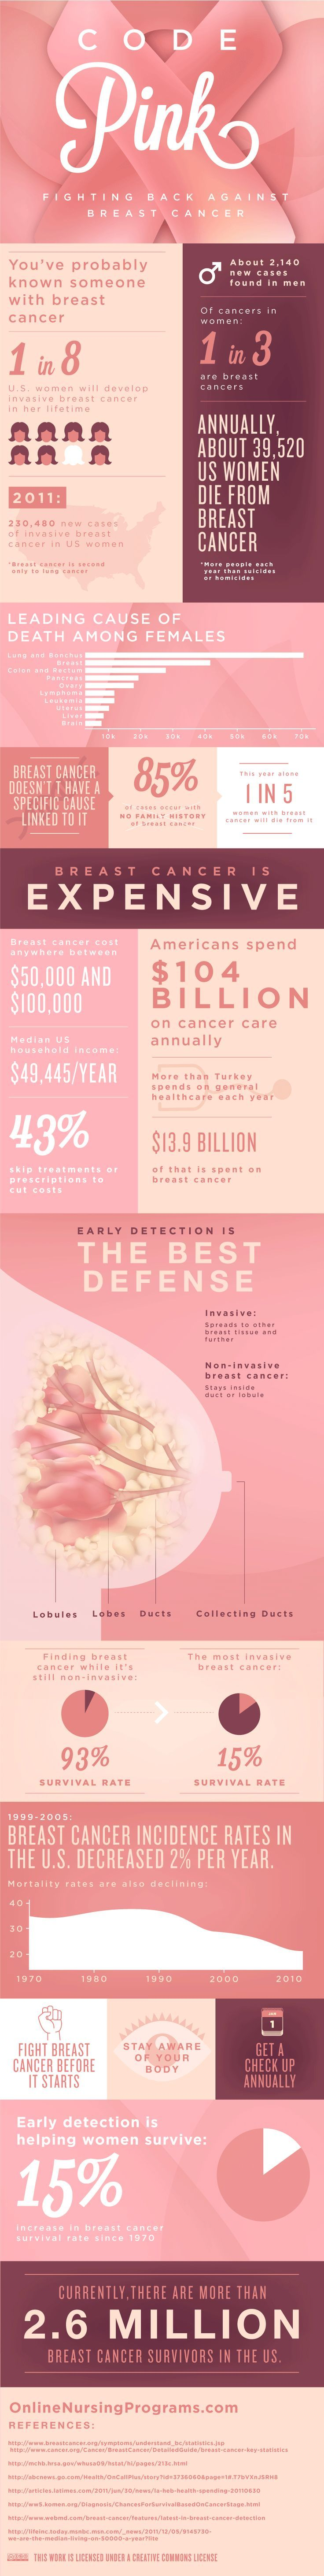 breast cancer #infographic www.treatmintbox.com